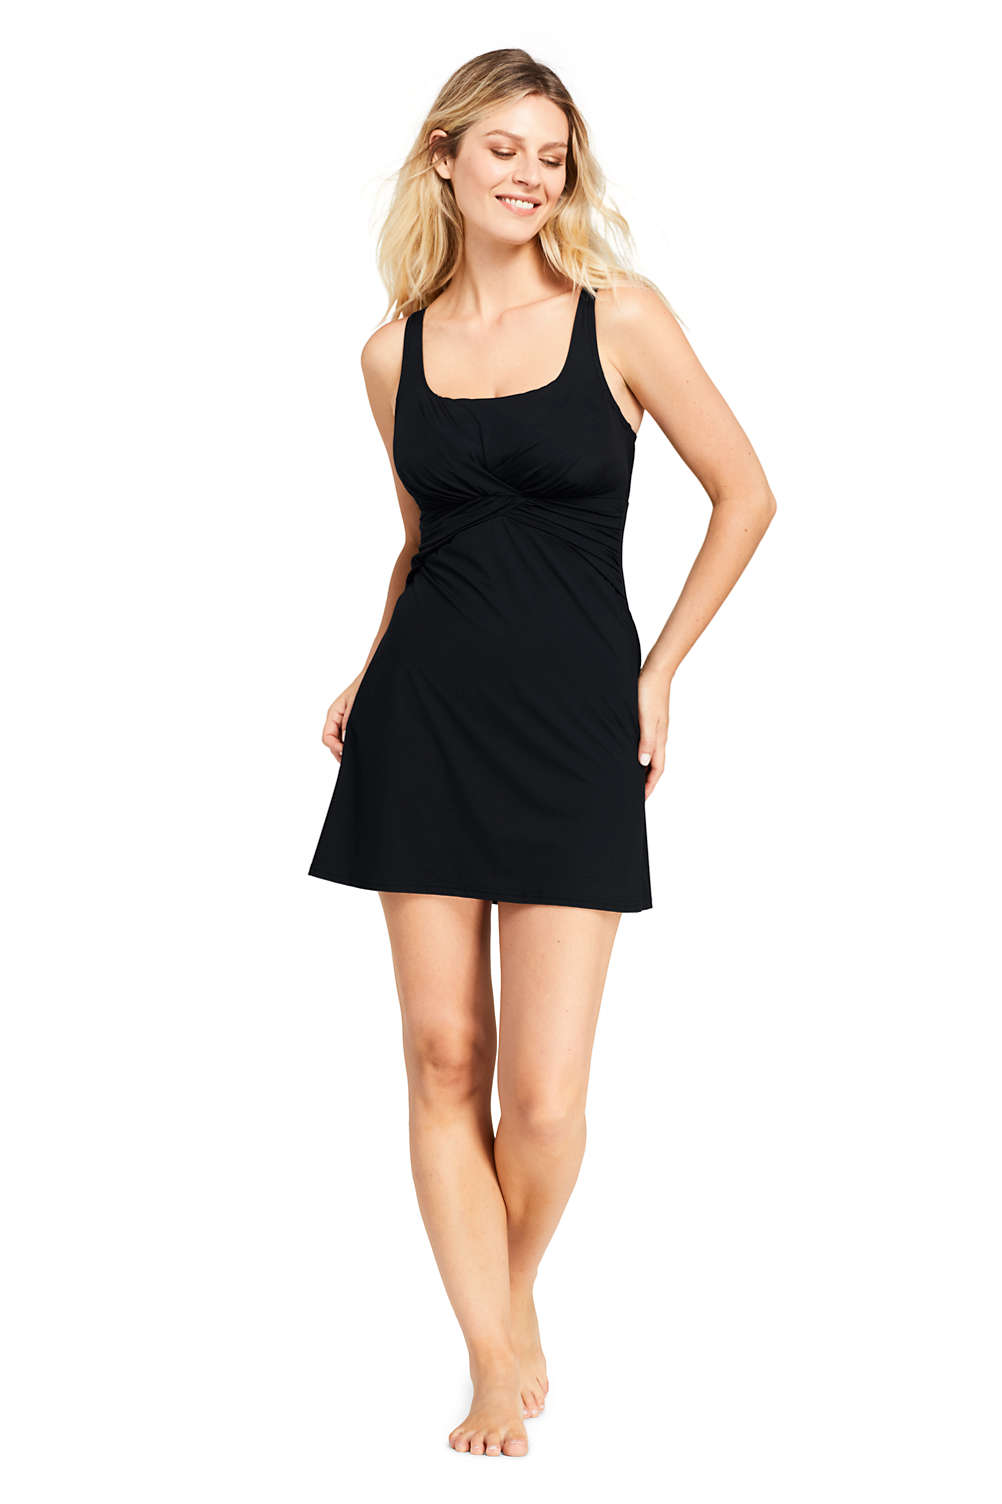 b35ed4e41df Women s Slender Draped Square Neck Underwire Swimdress with Tummy Control  from Lands  End